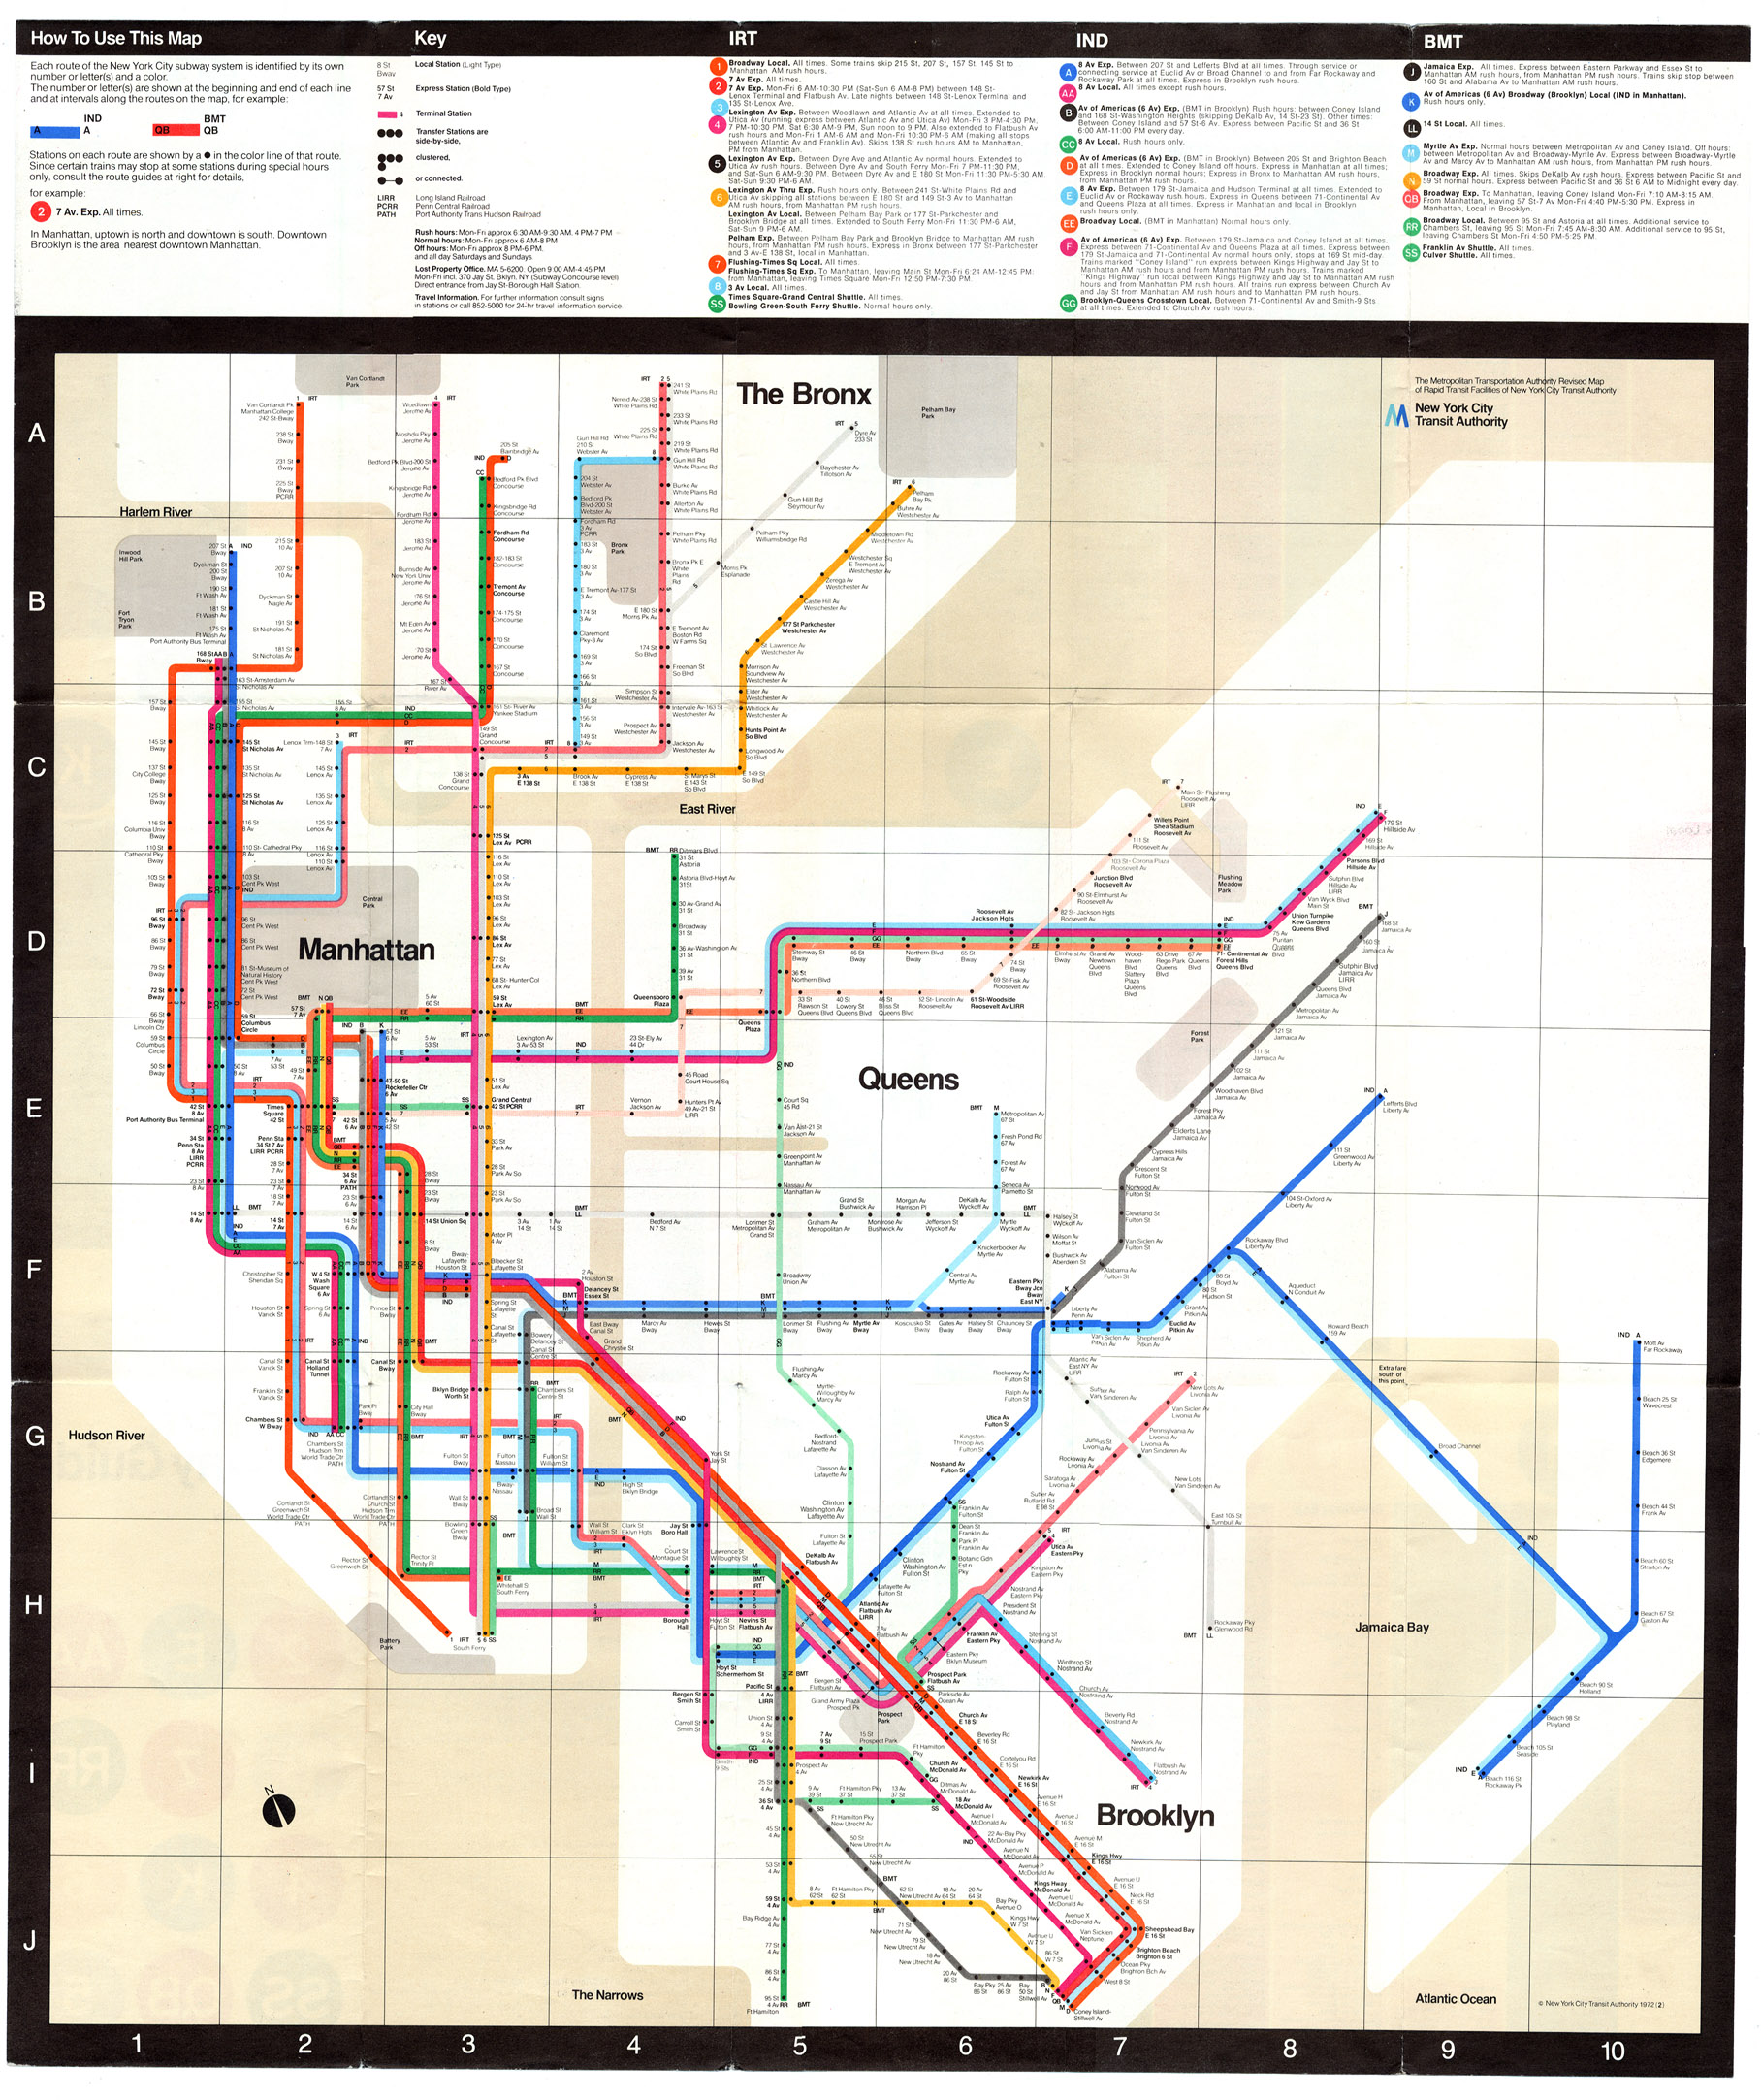 Cards With Subway Map.Send A Card To The Man Who Put Helvetica On Your Subway Map Quartz